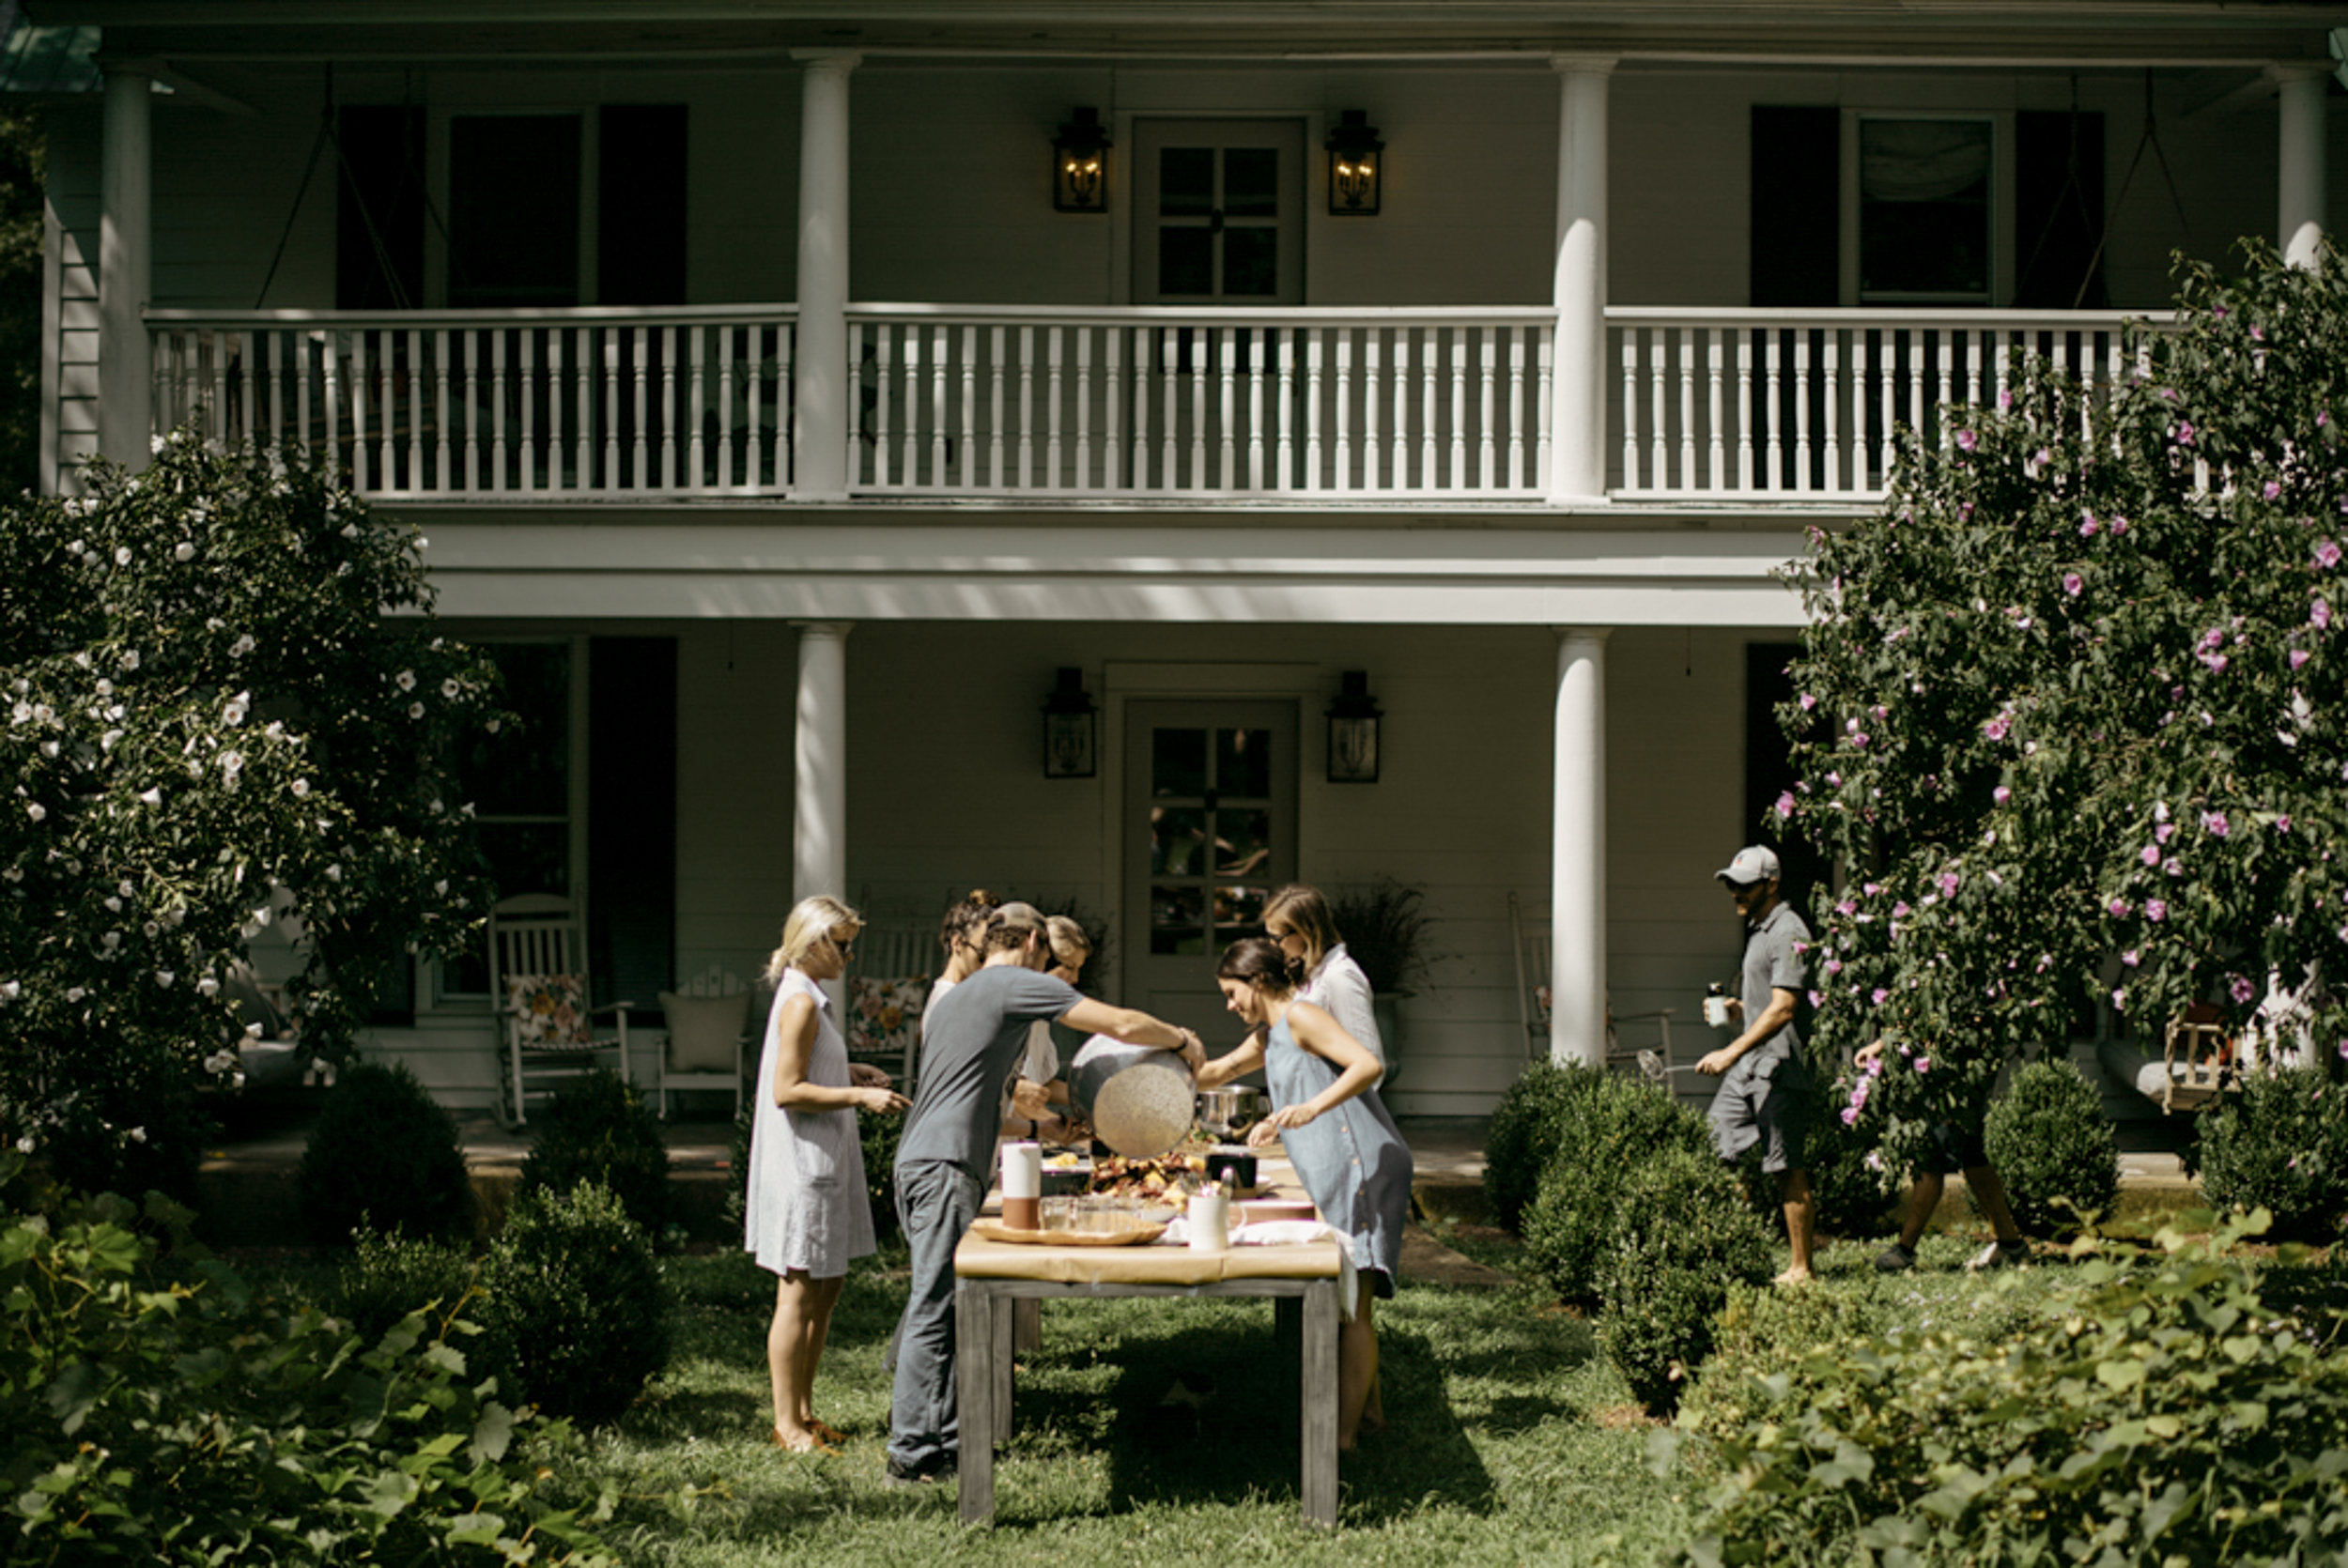 166-mayker-creative-crawfish-boil-summer-party-ideas-rentals-nashville-design-tips-hosting-entertaining-Fox-Country-Farmhouse-Fourth-of-July.jpg